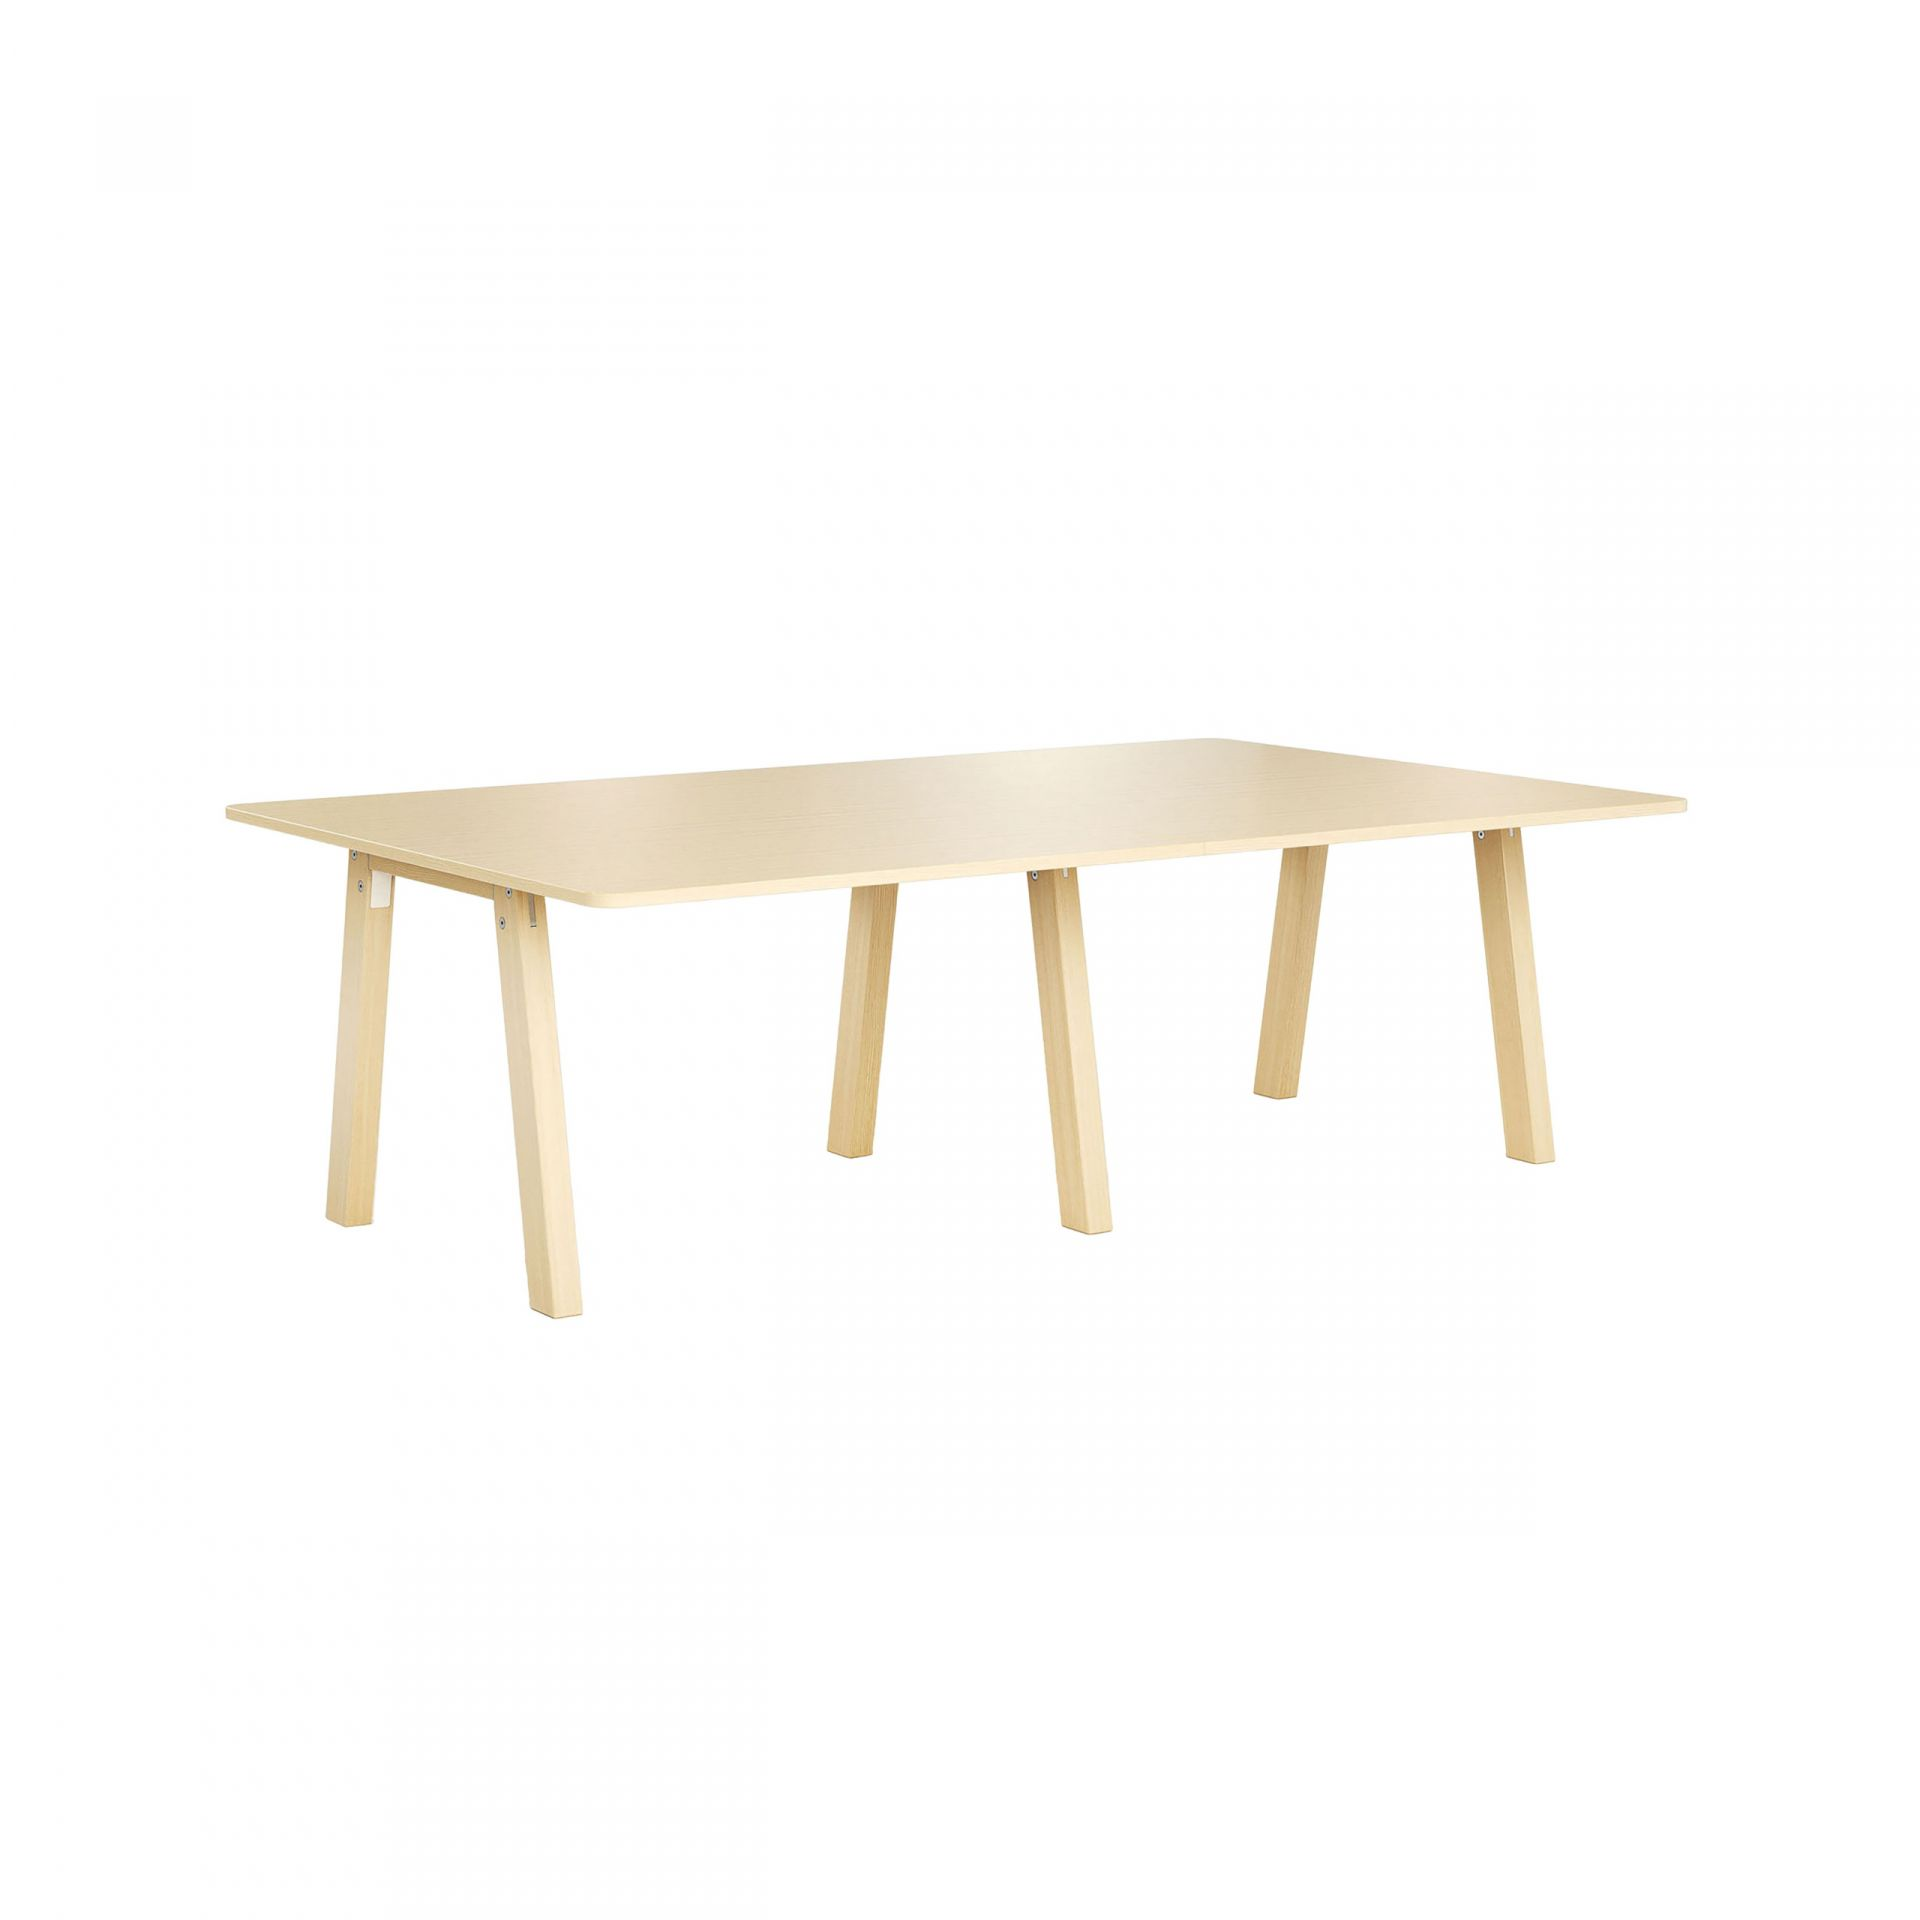 Collaborate Meeting table with wooden legs